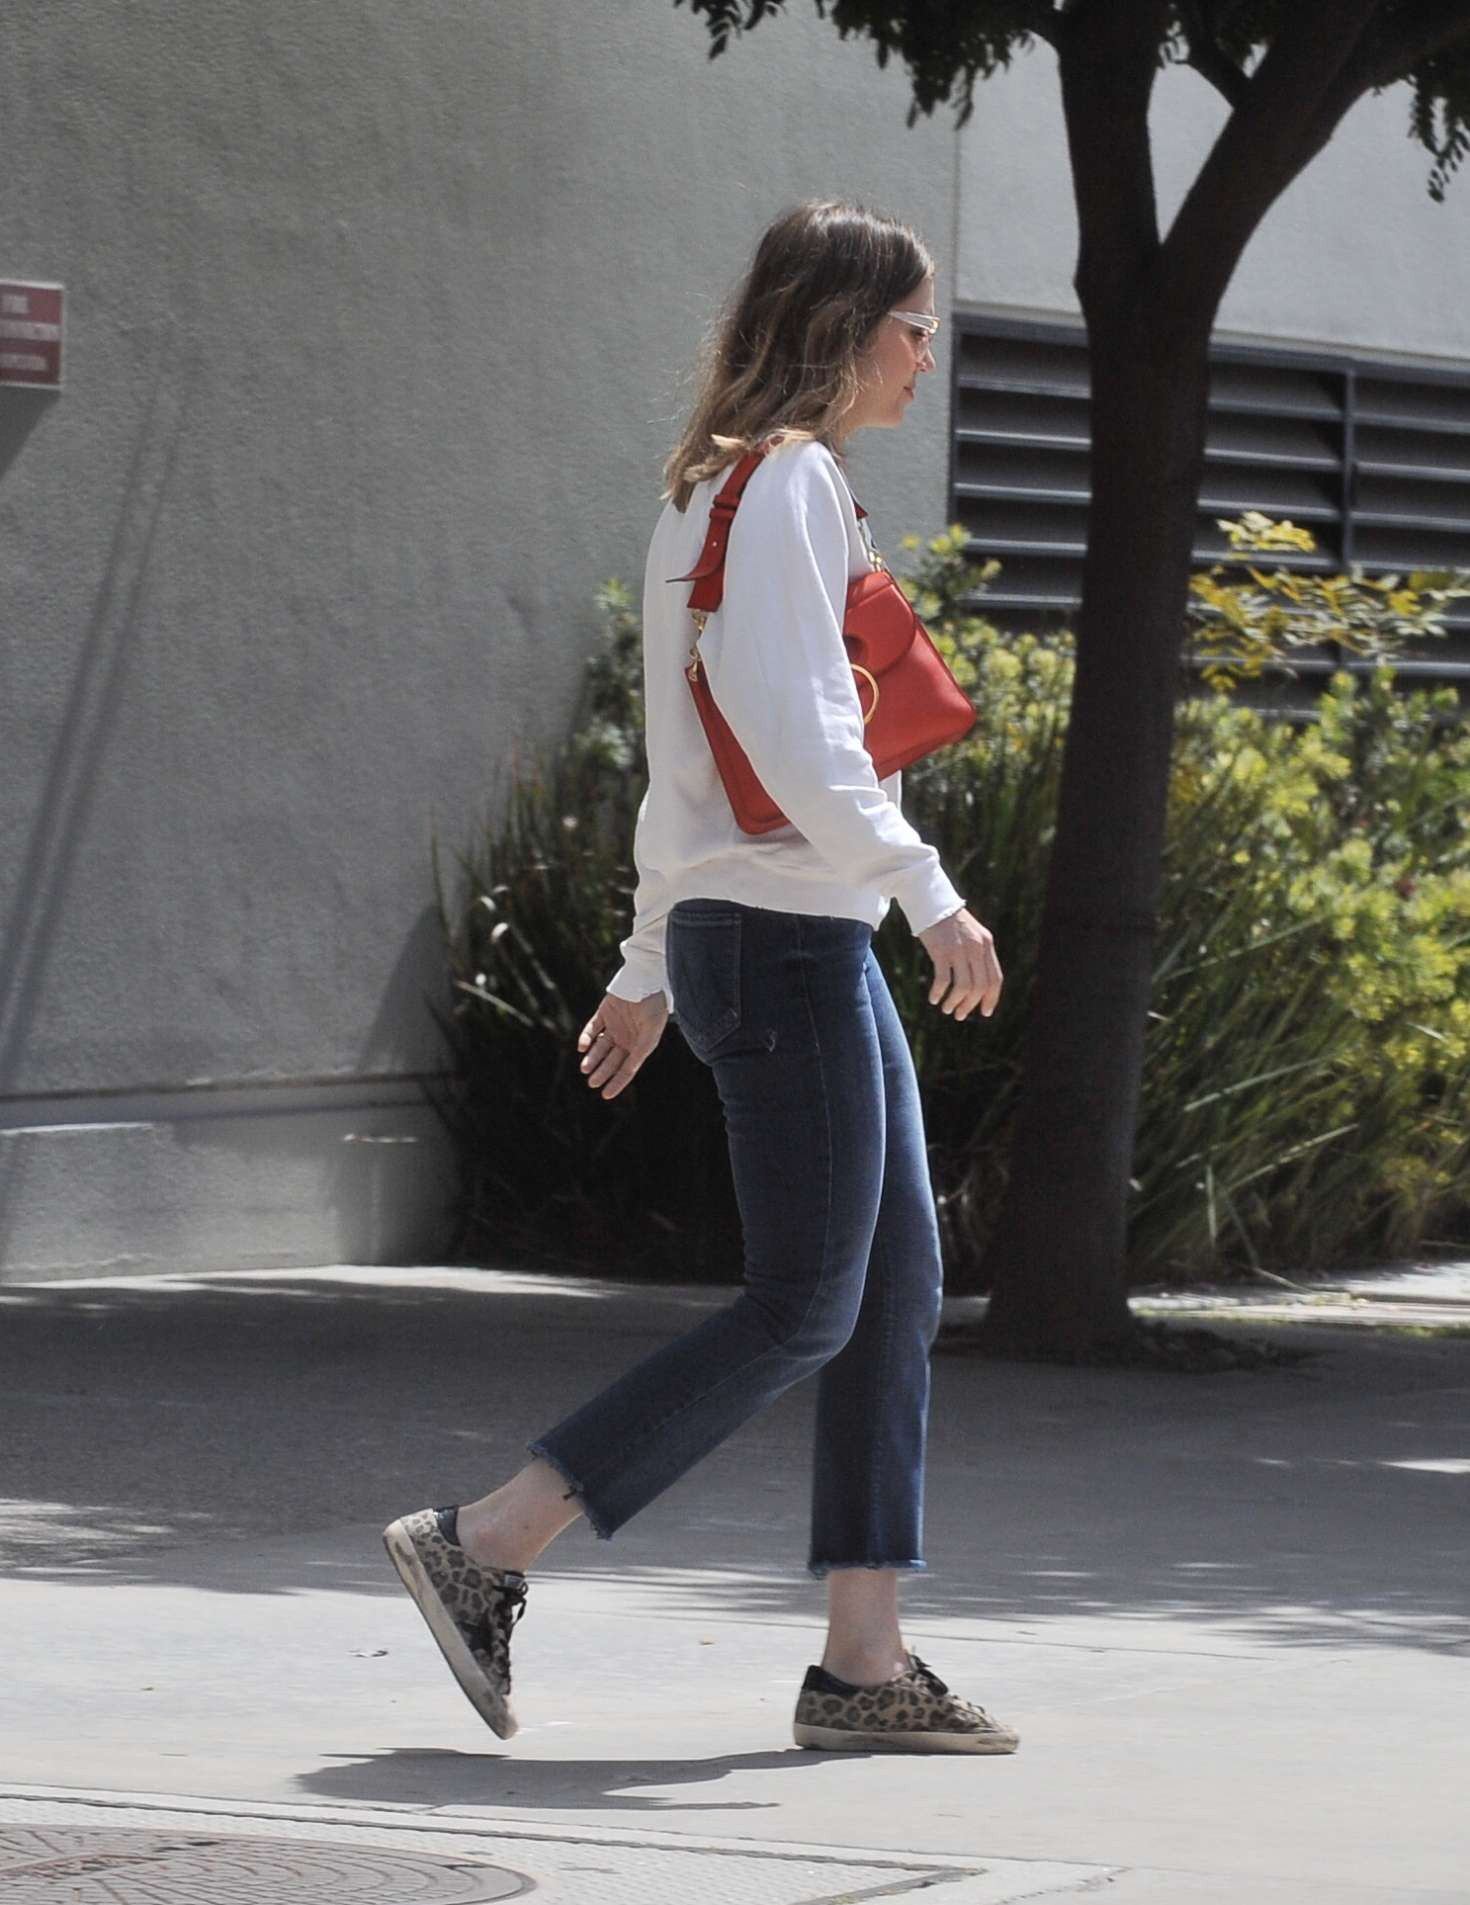 Mandy Moore with her fiancee out in Los Angeles